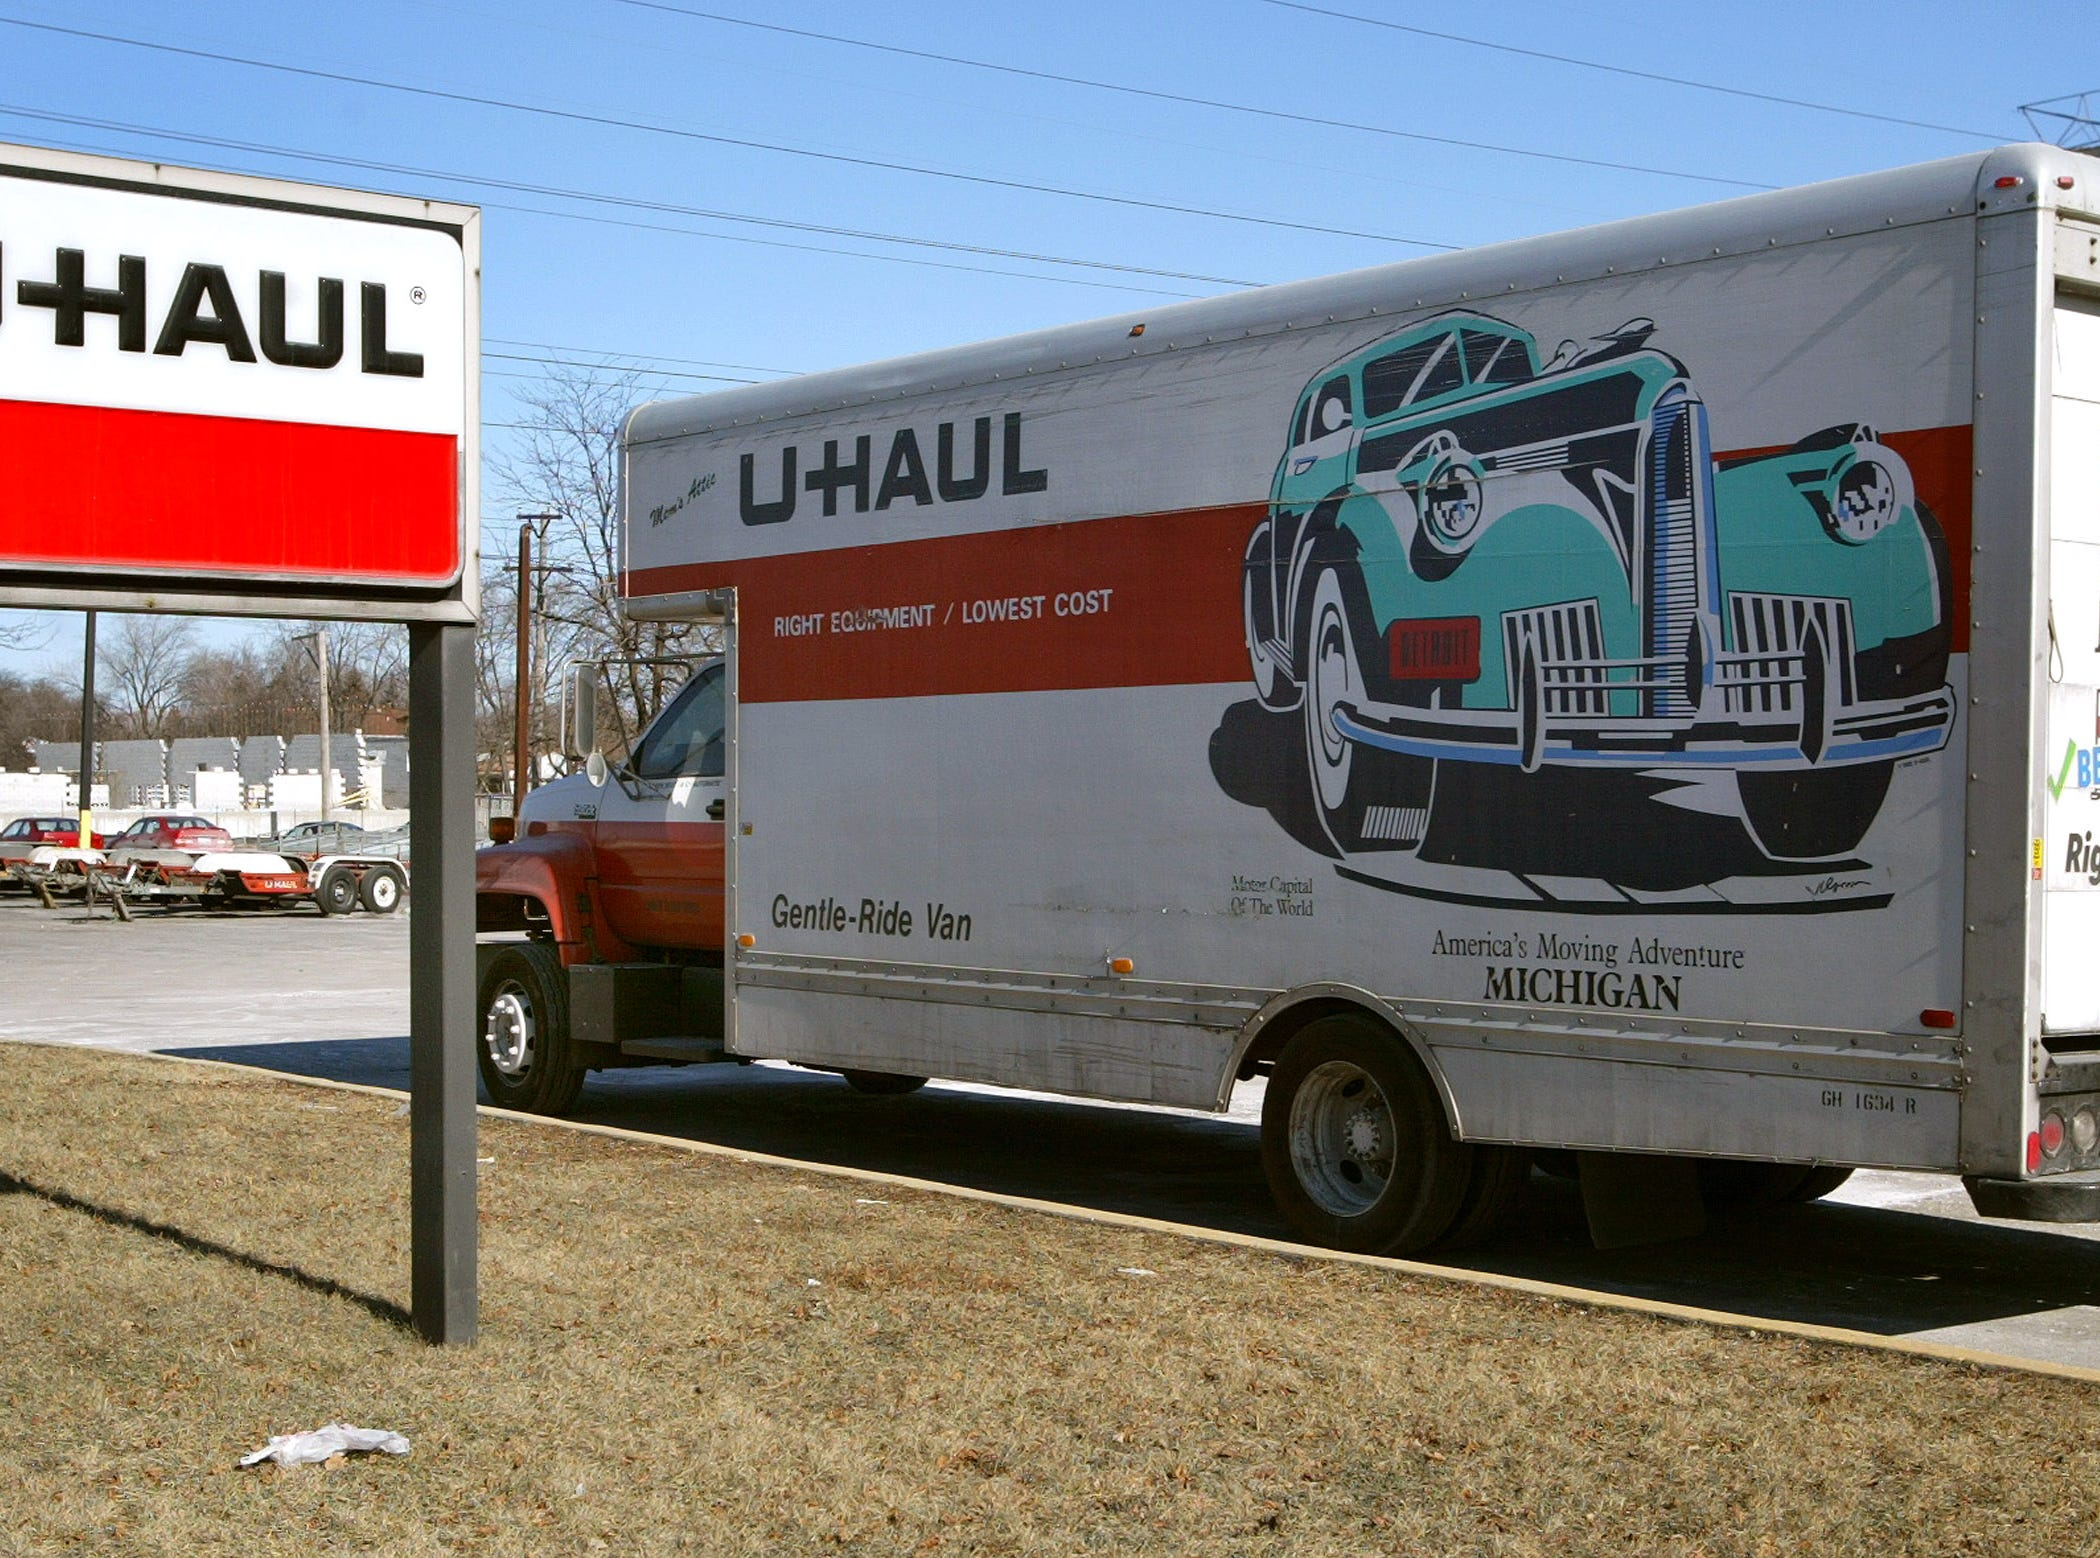 U-Haul, hiring 170. The transportation and propane-services company has openings ranging from customer representatives to area field manager. More info: jobs.uhaul.com.